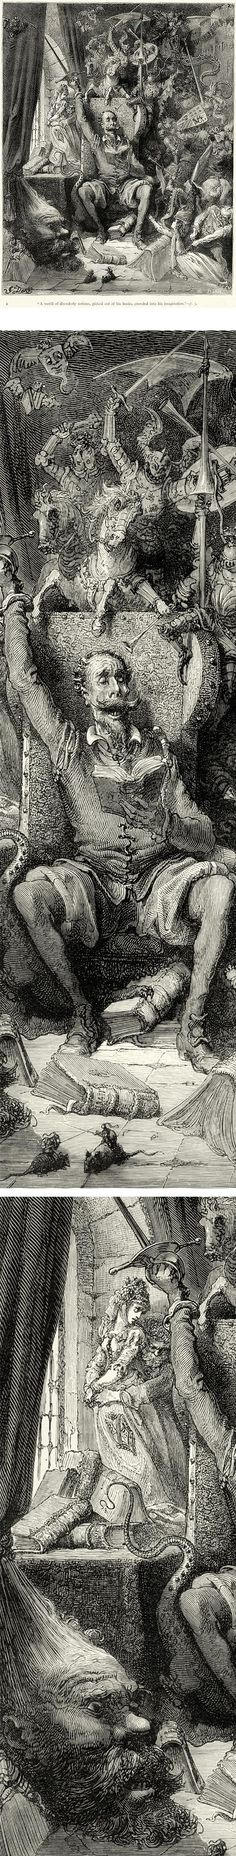 Miguel de Cervantes - Don Qixote, plate 1: A world of disorderly notions, picked out of his books, crowded into his imagination, Gustave Dore